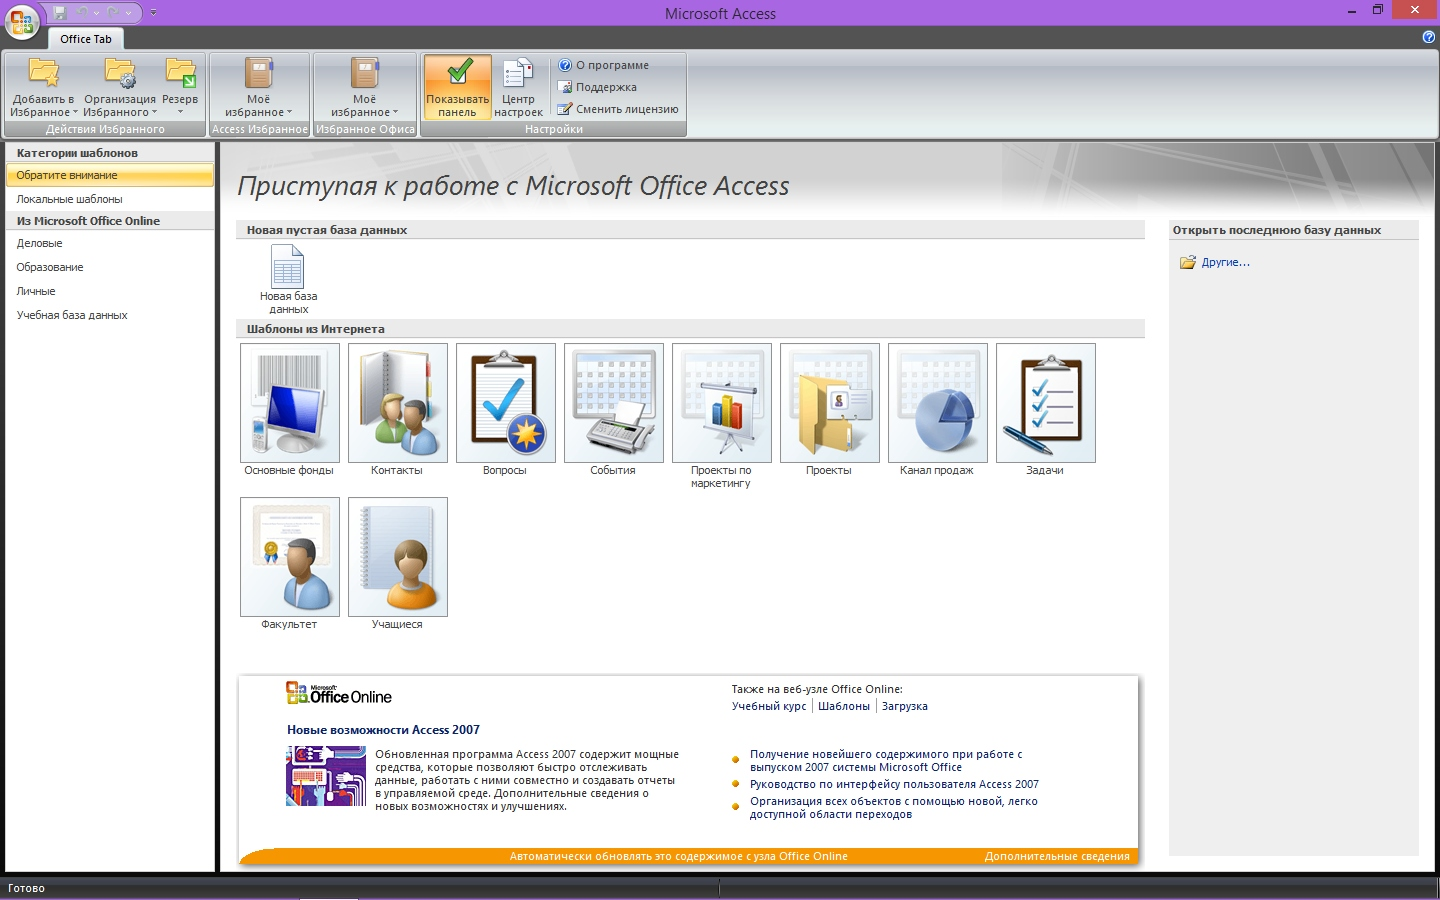 Microsoft Office 2007 Enterprise + Visio Pro + Project Pro SP3 12.0.6762.5000 RePack by KpoJIuK (15.12.2016)